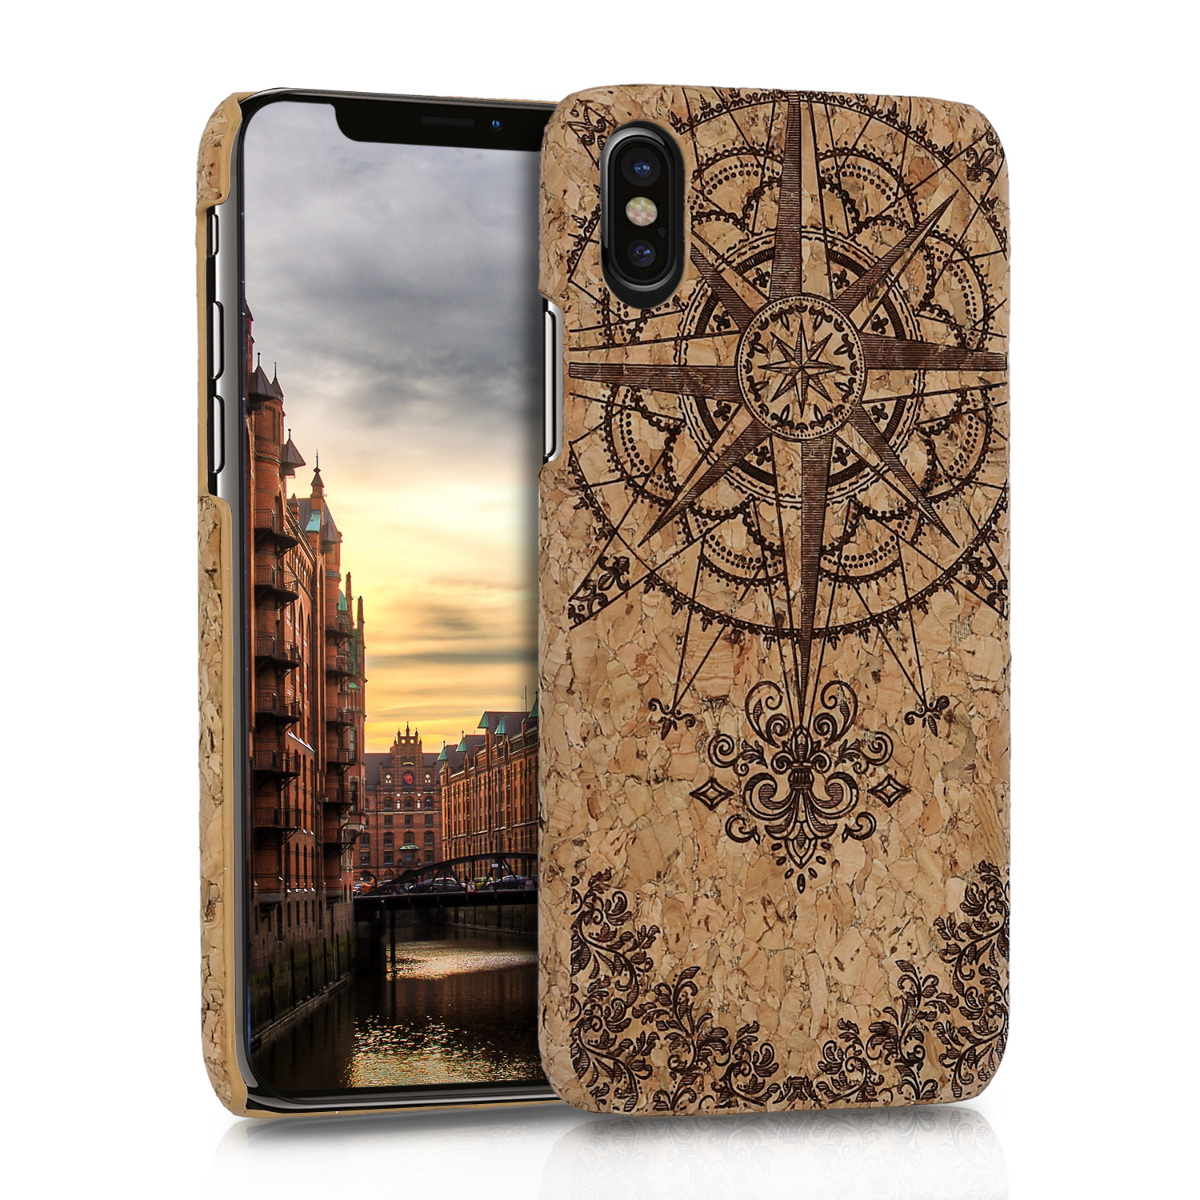 kwmobile Apple iPhone X Case - Protective Cork Cover for Apple iPhone X - Dark Brown / Light Brown